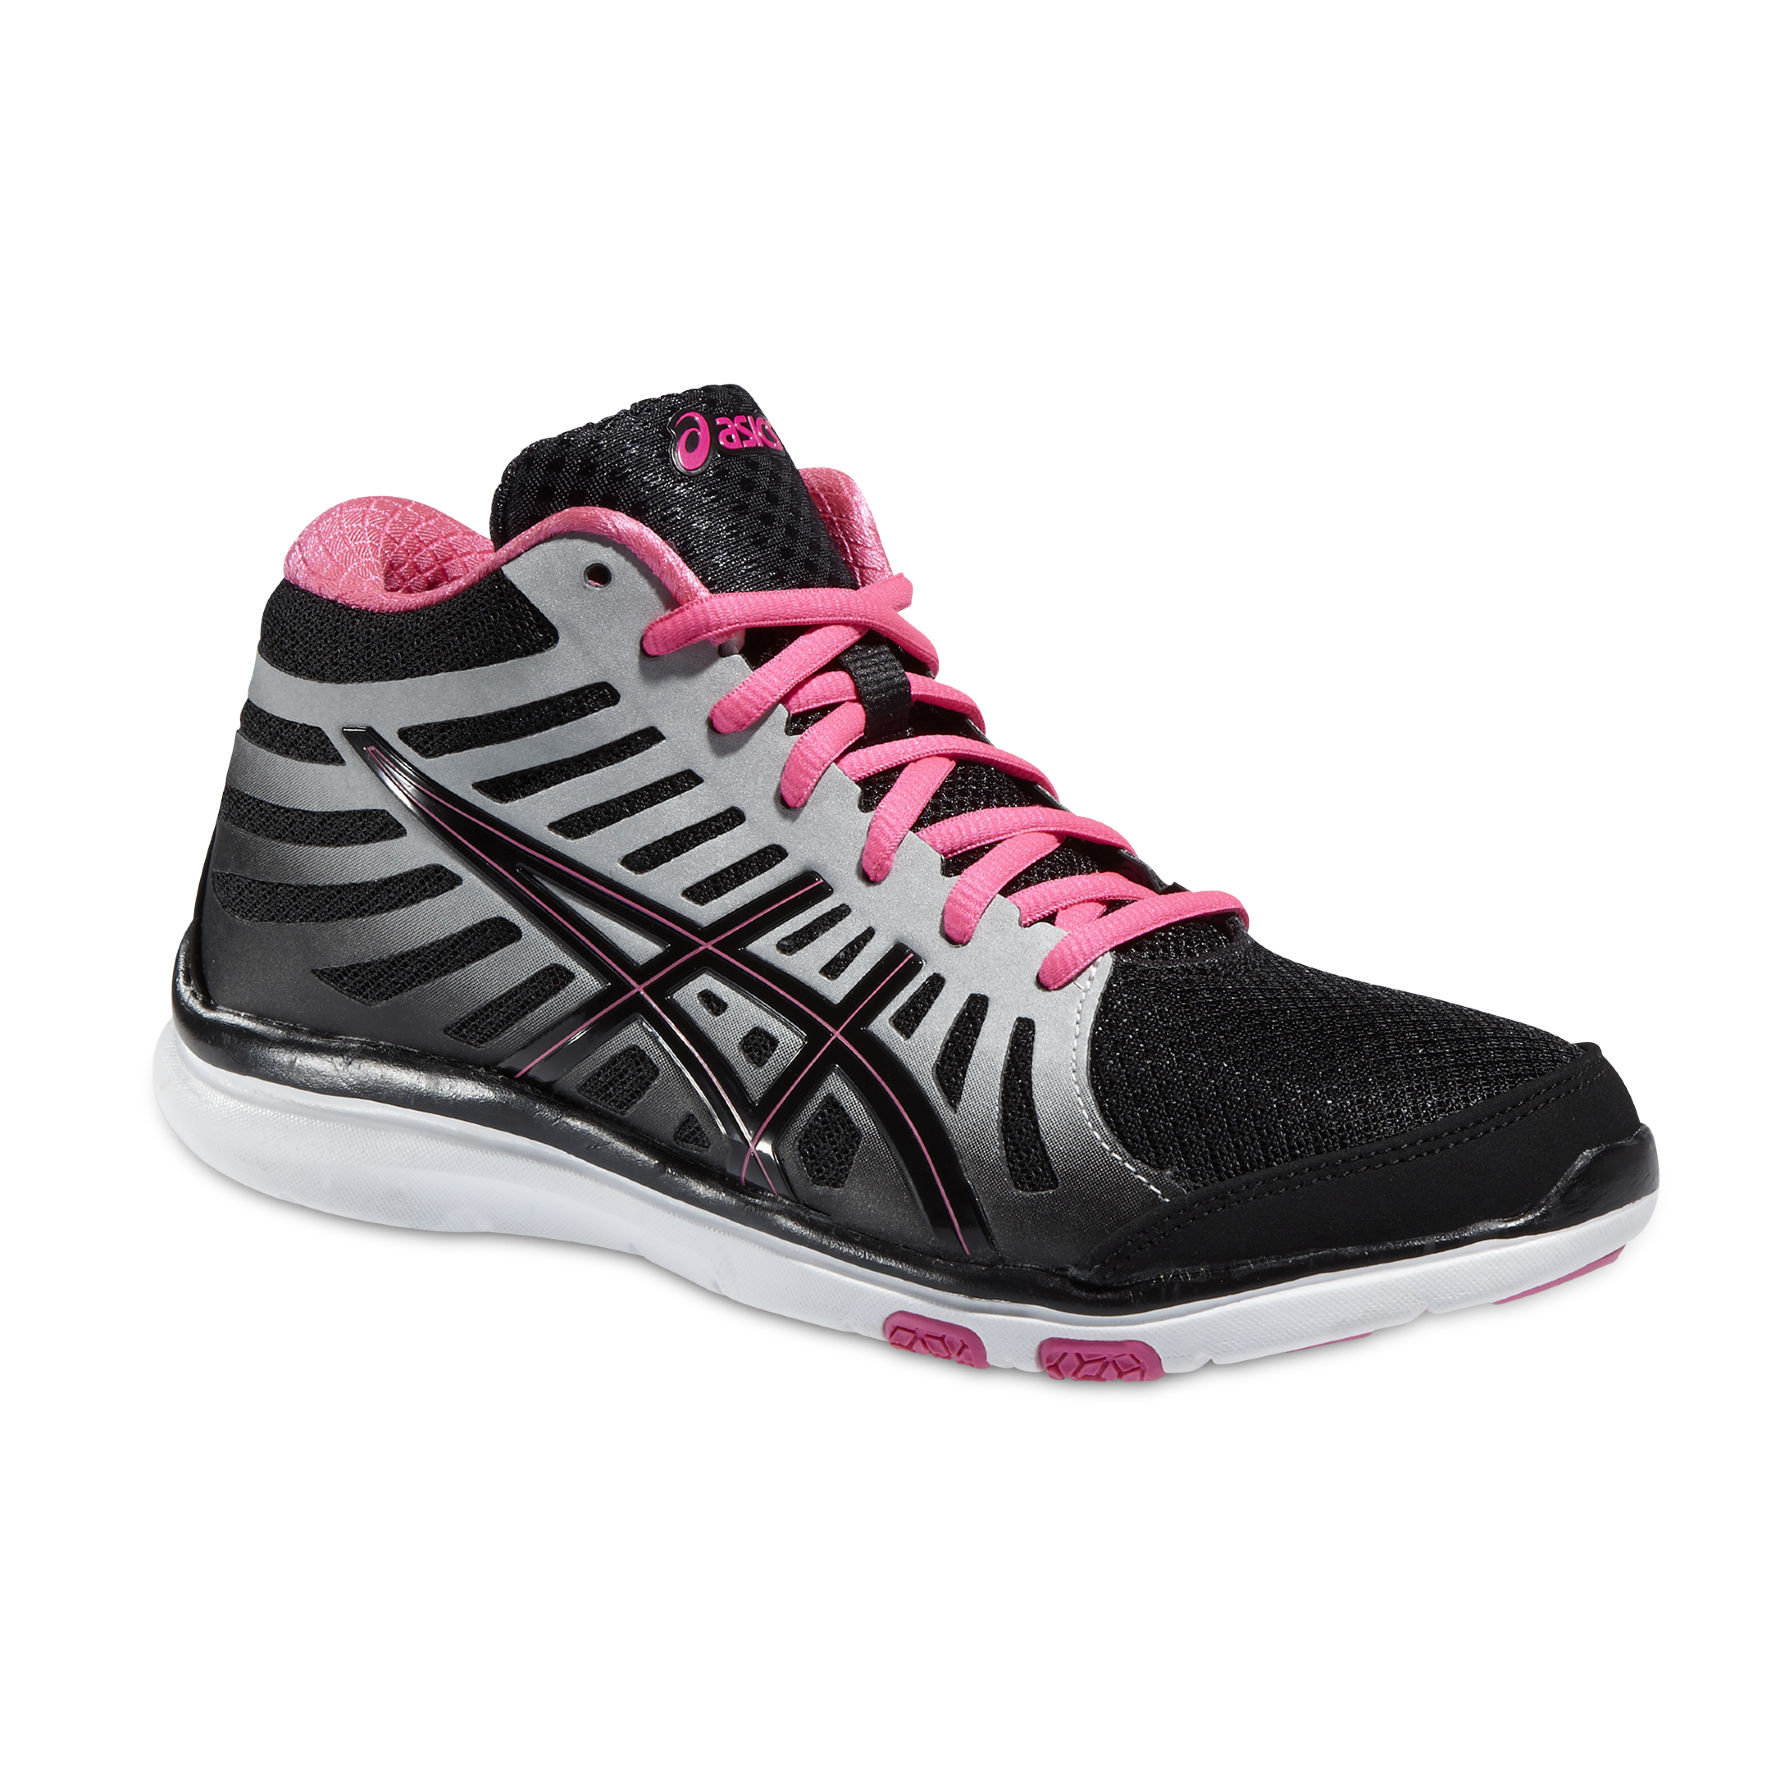 Asics Ayami Motion MT in Schwarz